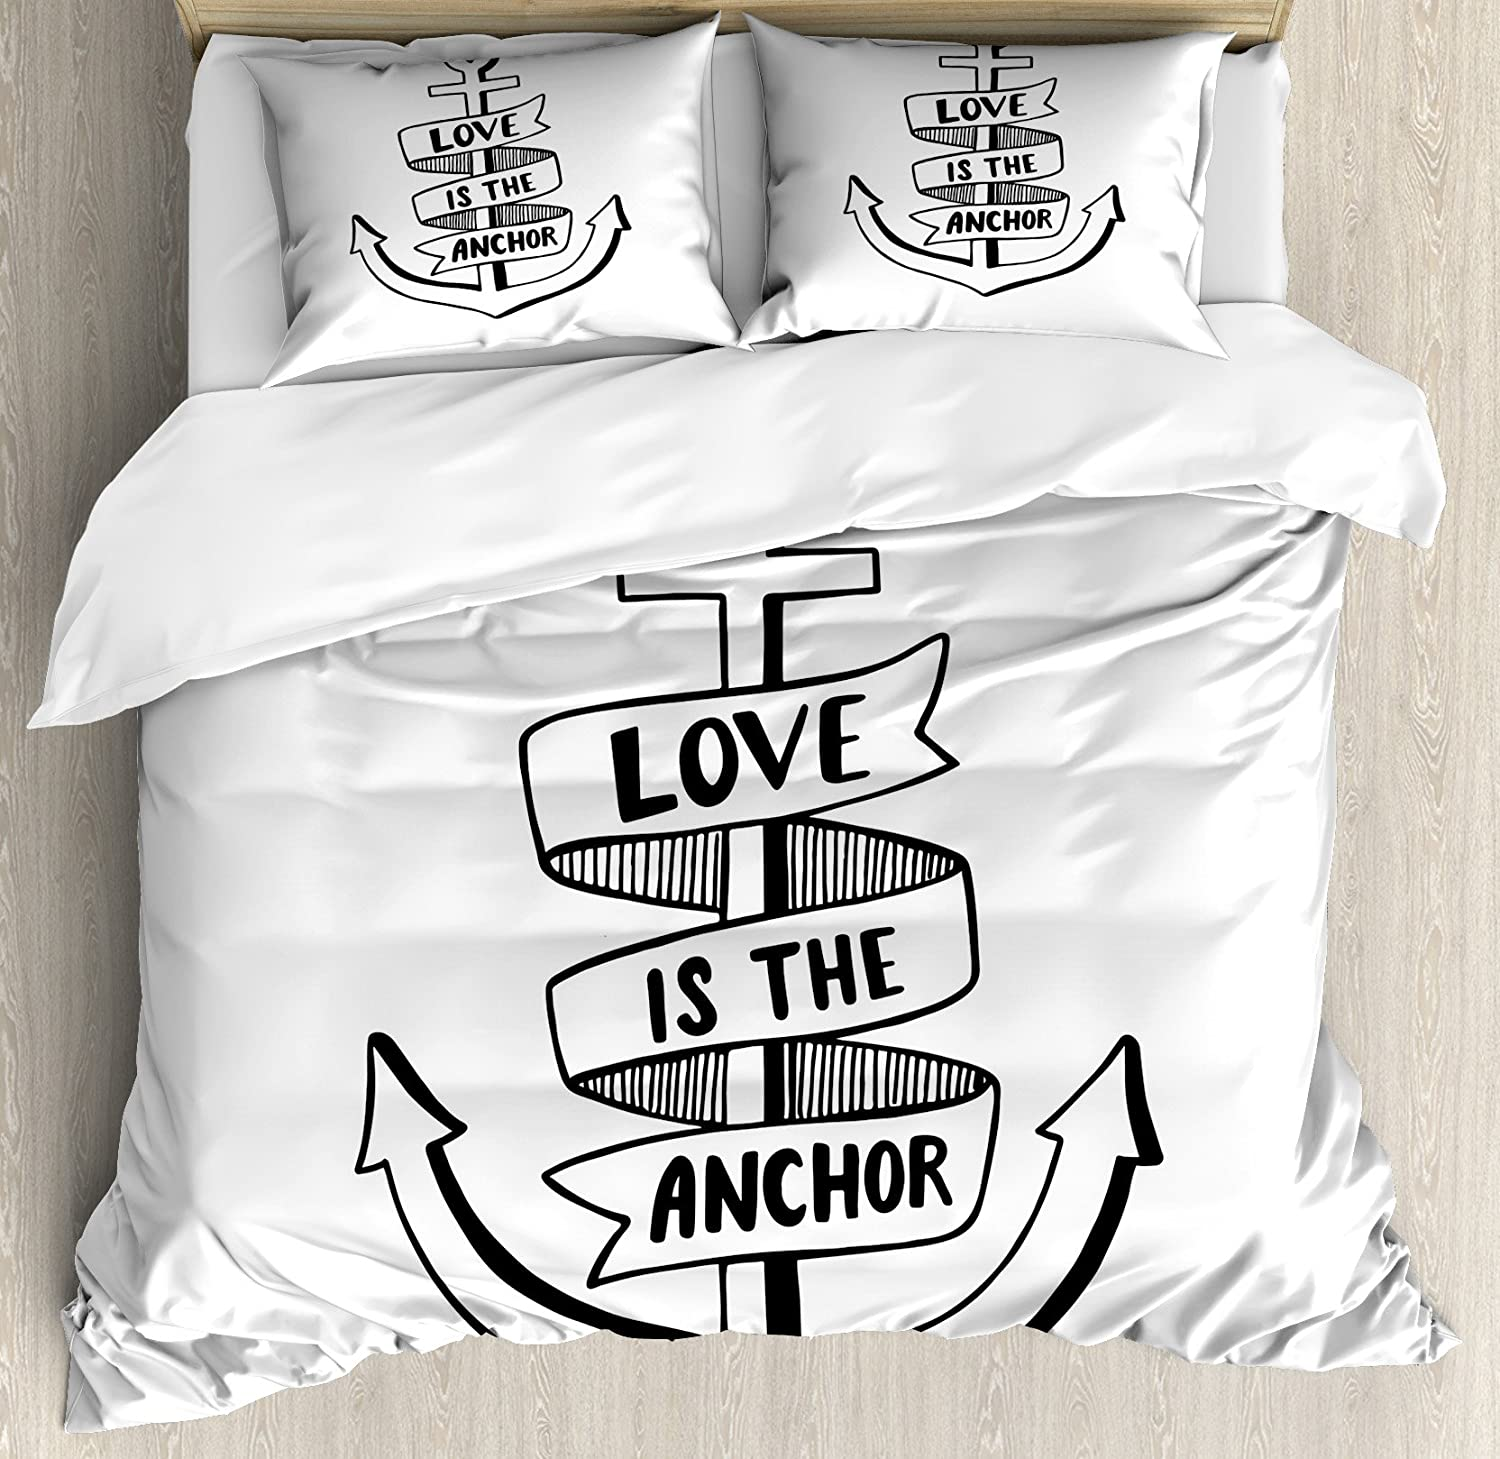 Ambesonne Anchor Duvet Cover Set, Hand Drawn Monochrome Nautical Motifs with Love is The Anchor Words and Heart, Decorative 3 Piece Bedding Set with 2 Pillow Shams, Queen Size, White Black